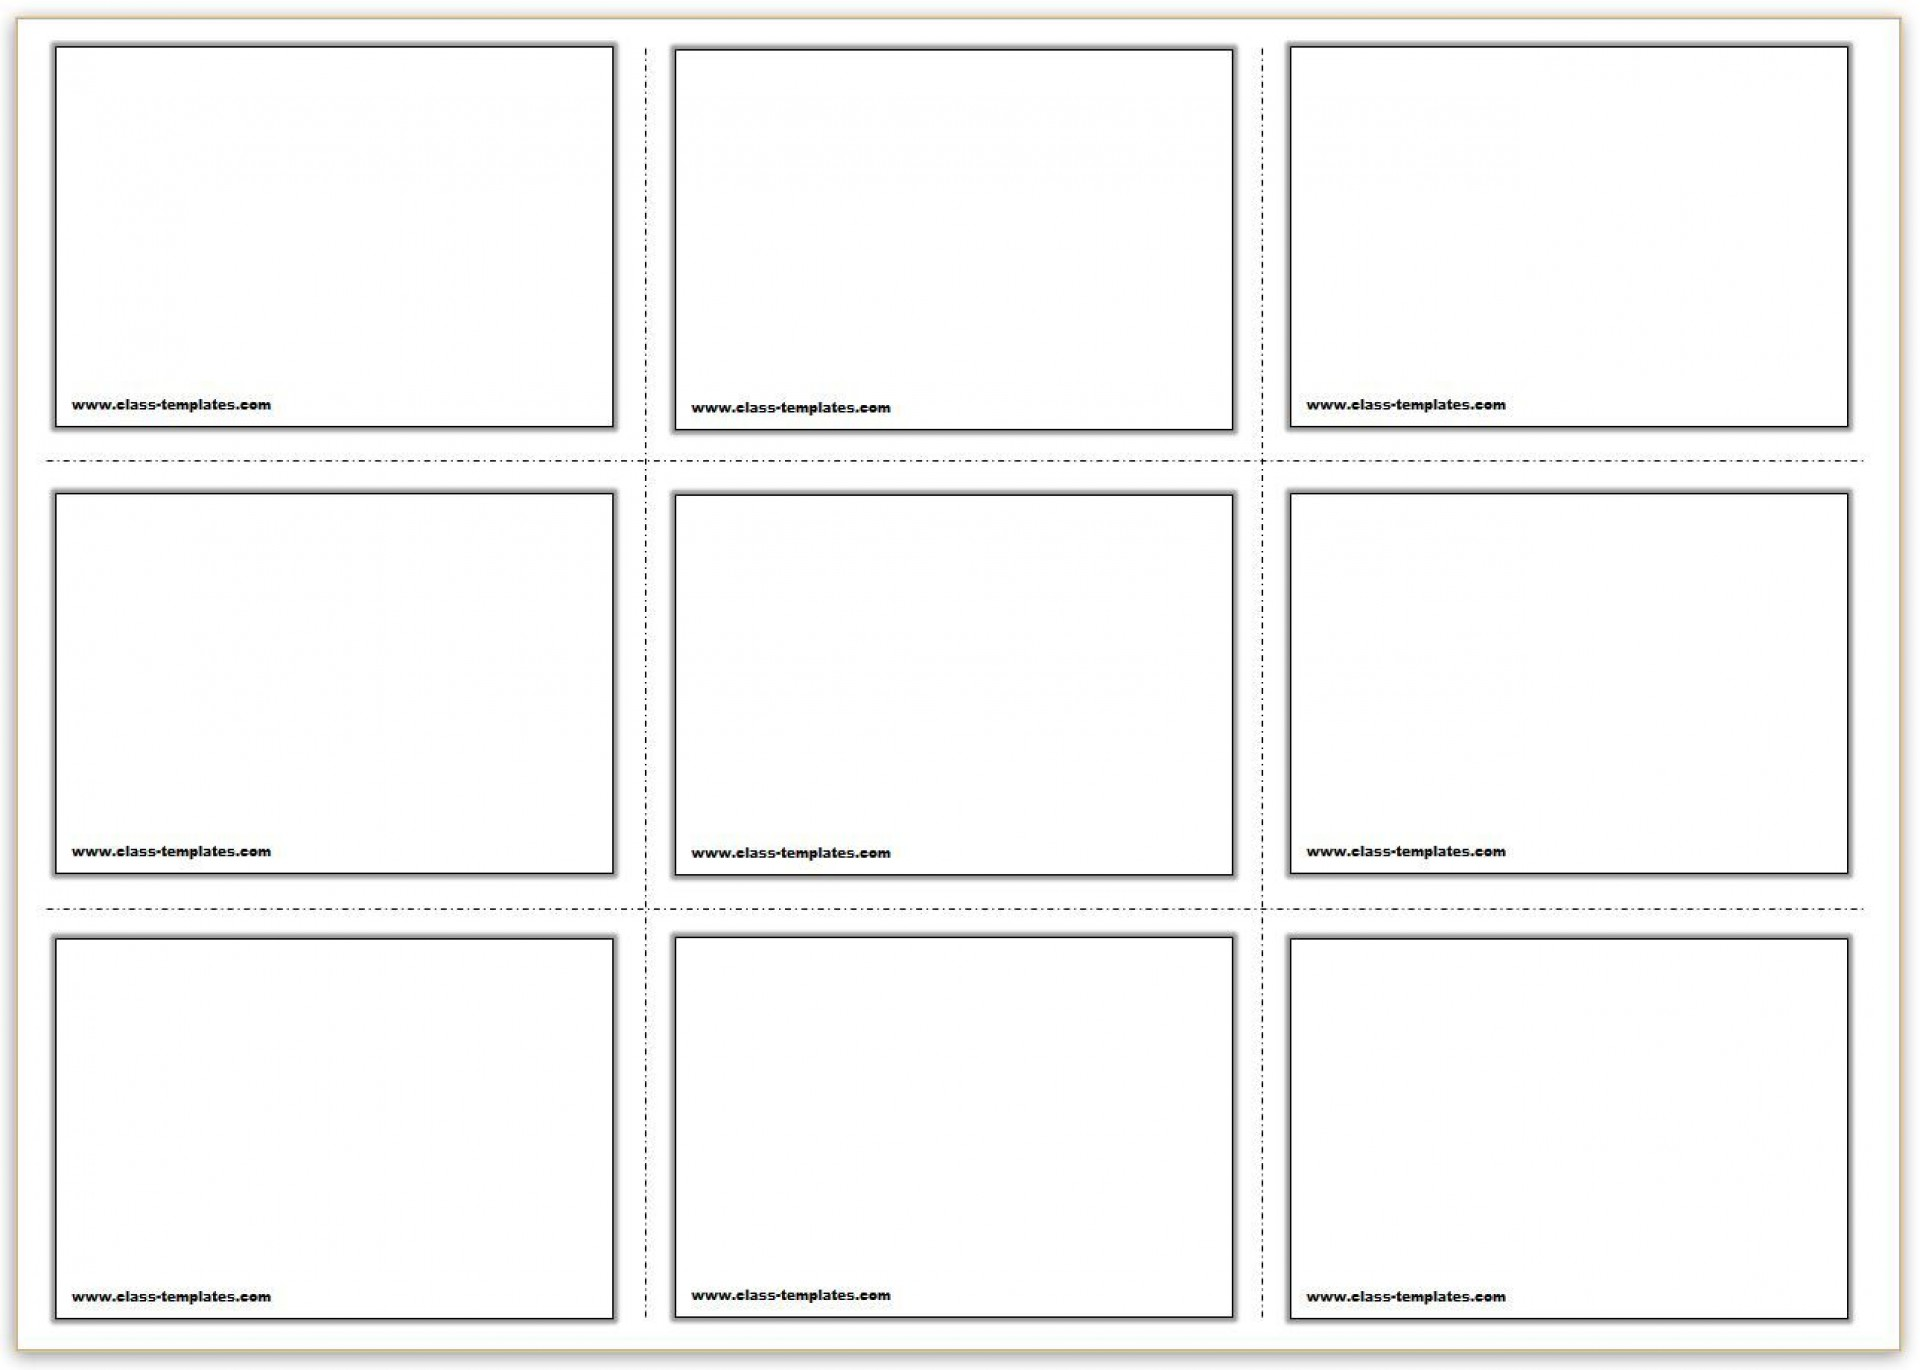 008 Beautiful Free Printable Card Template Word High Definition  Blank Busines For1920